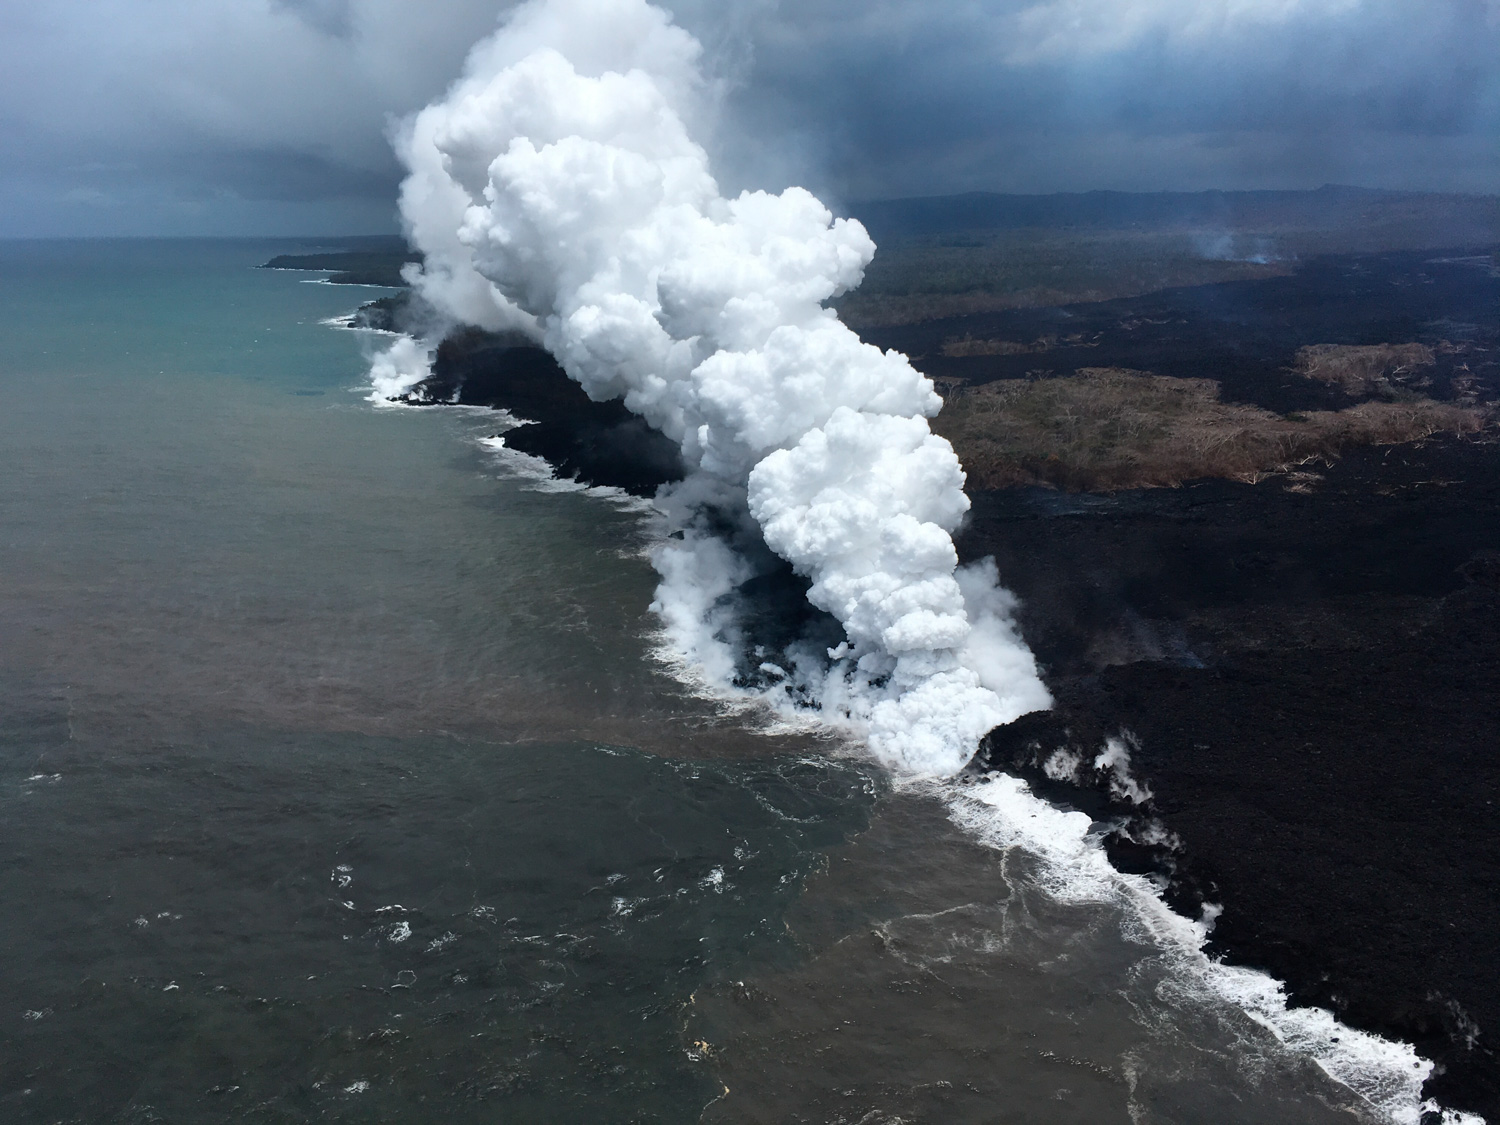 "<div class=""meta image-caption""><div class=""origin-logo origin-image none""><span>none</span></div><span class=""caption-text"">Lava sends up clouds of steam and toxic gases as it enters the Pacific Ocean as Kilauea Volcano continues its eruption cycle near Pahoa on the island of Kilauea, Hawaii. (U.S. Geological Survey via AP)</span></div>"